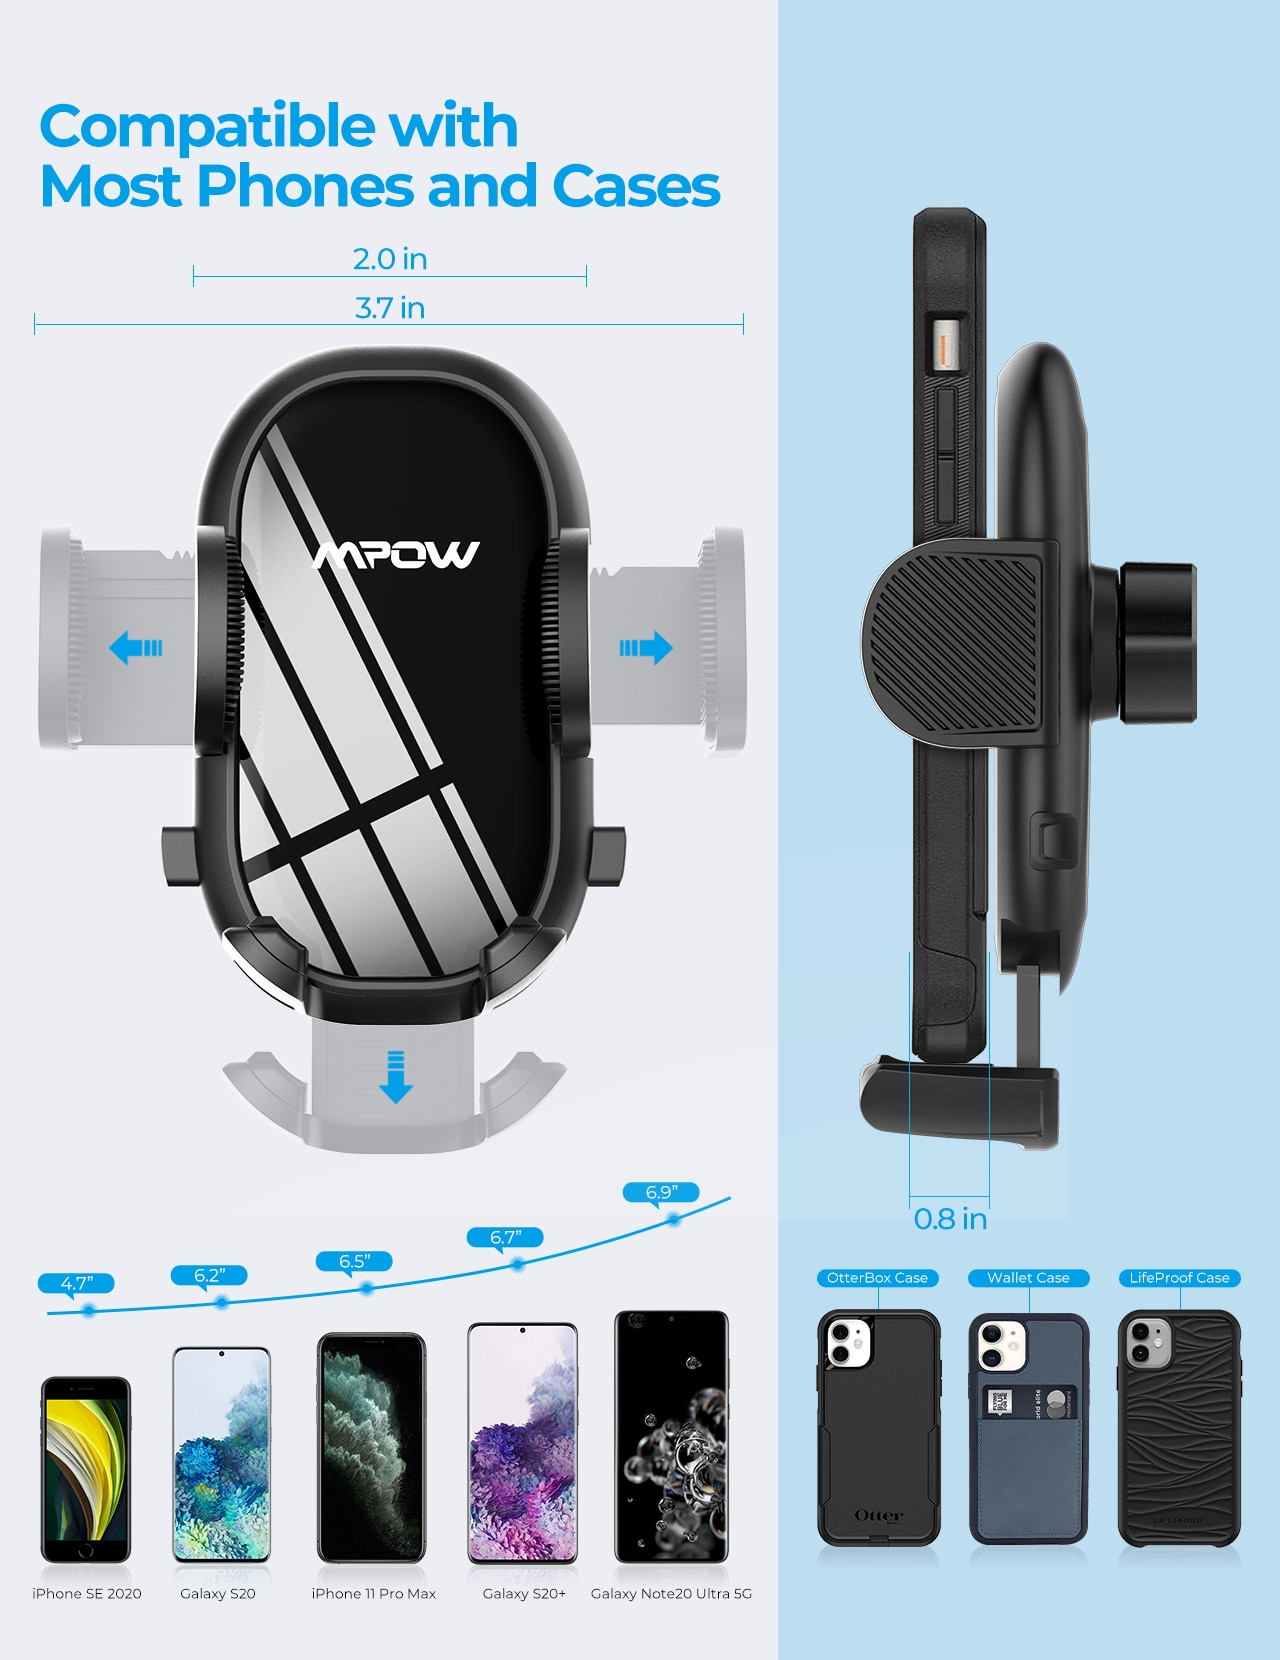 H7bae0f5abe374a74b49559d3252417baF - MPOW CA163 Universal Air Vent Car Phone Mount with Stable Clip and Dual Release Button Compatible with iPhone 12 11 Pro and More